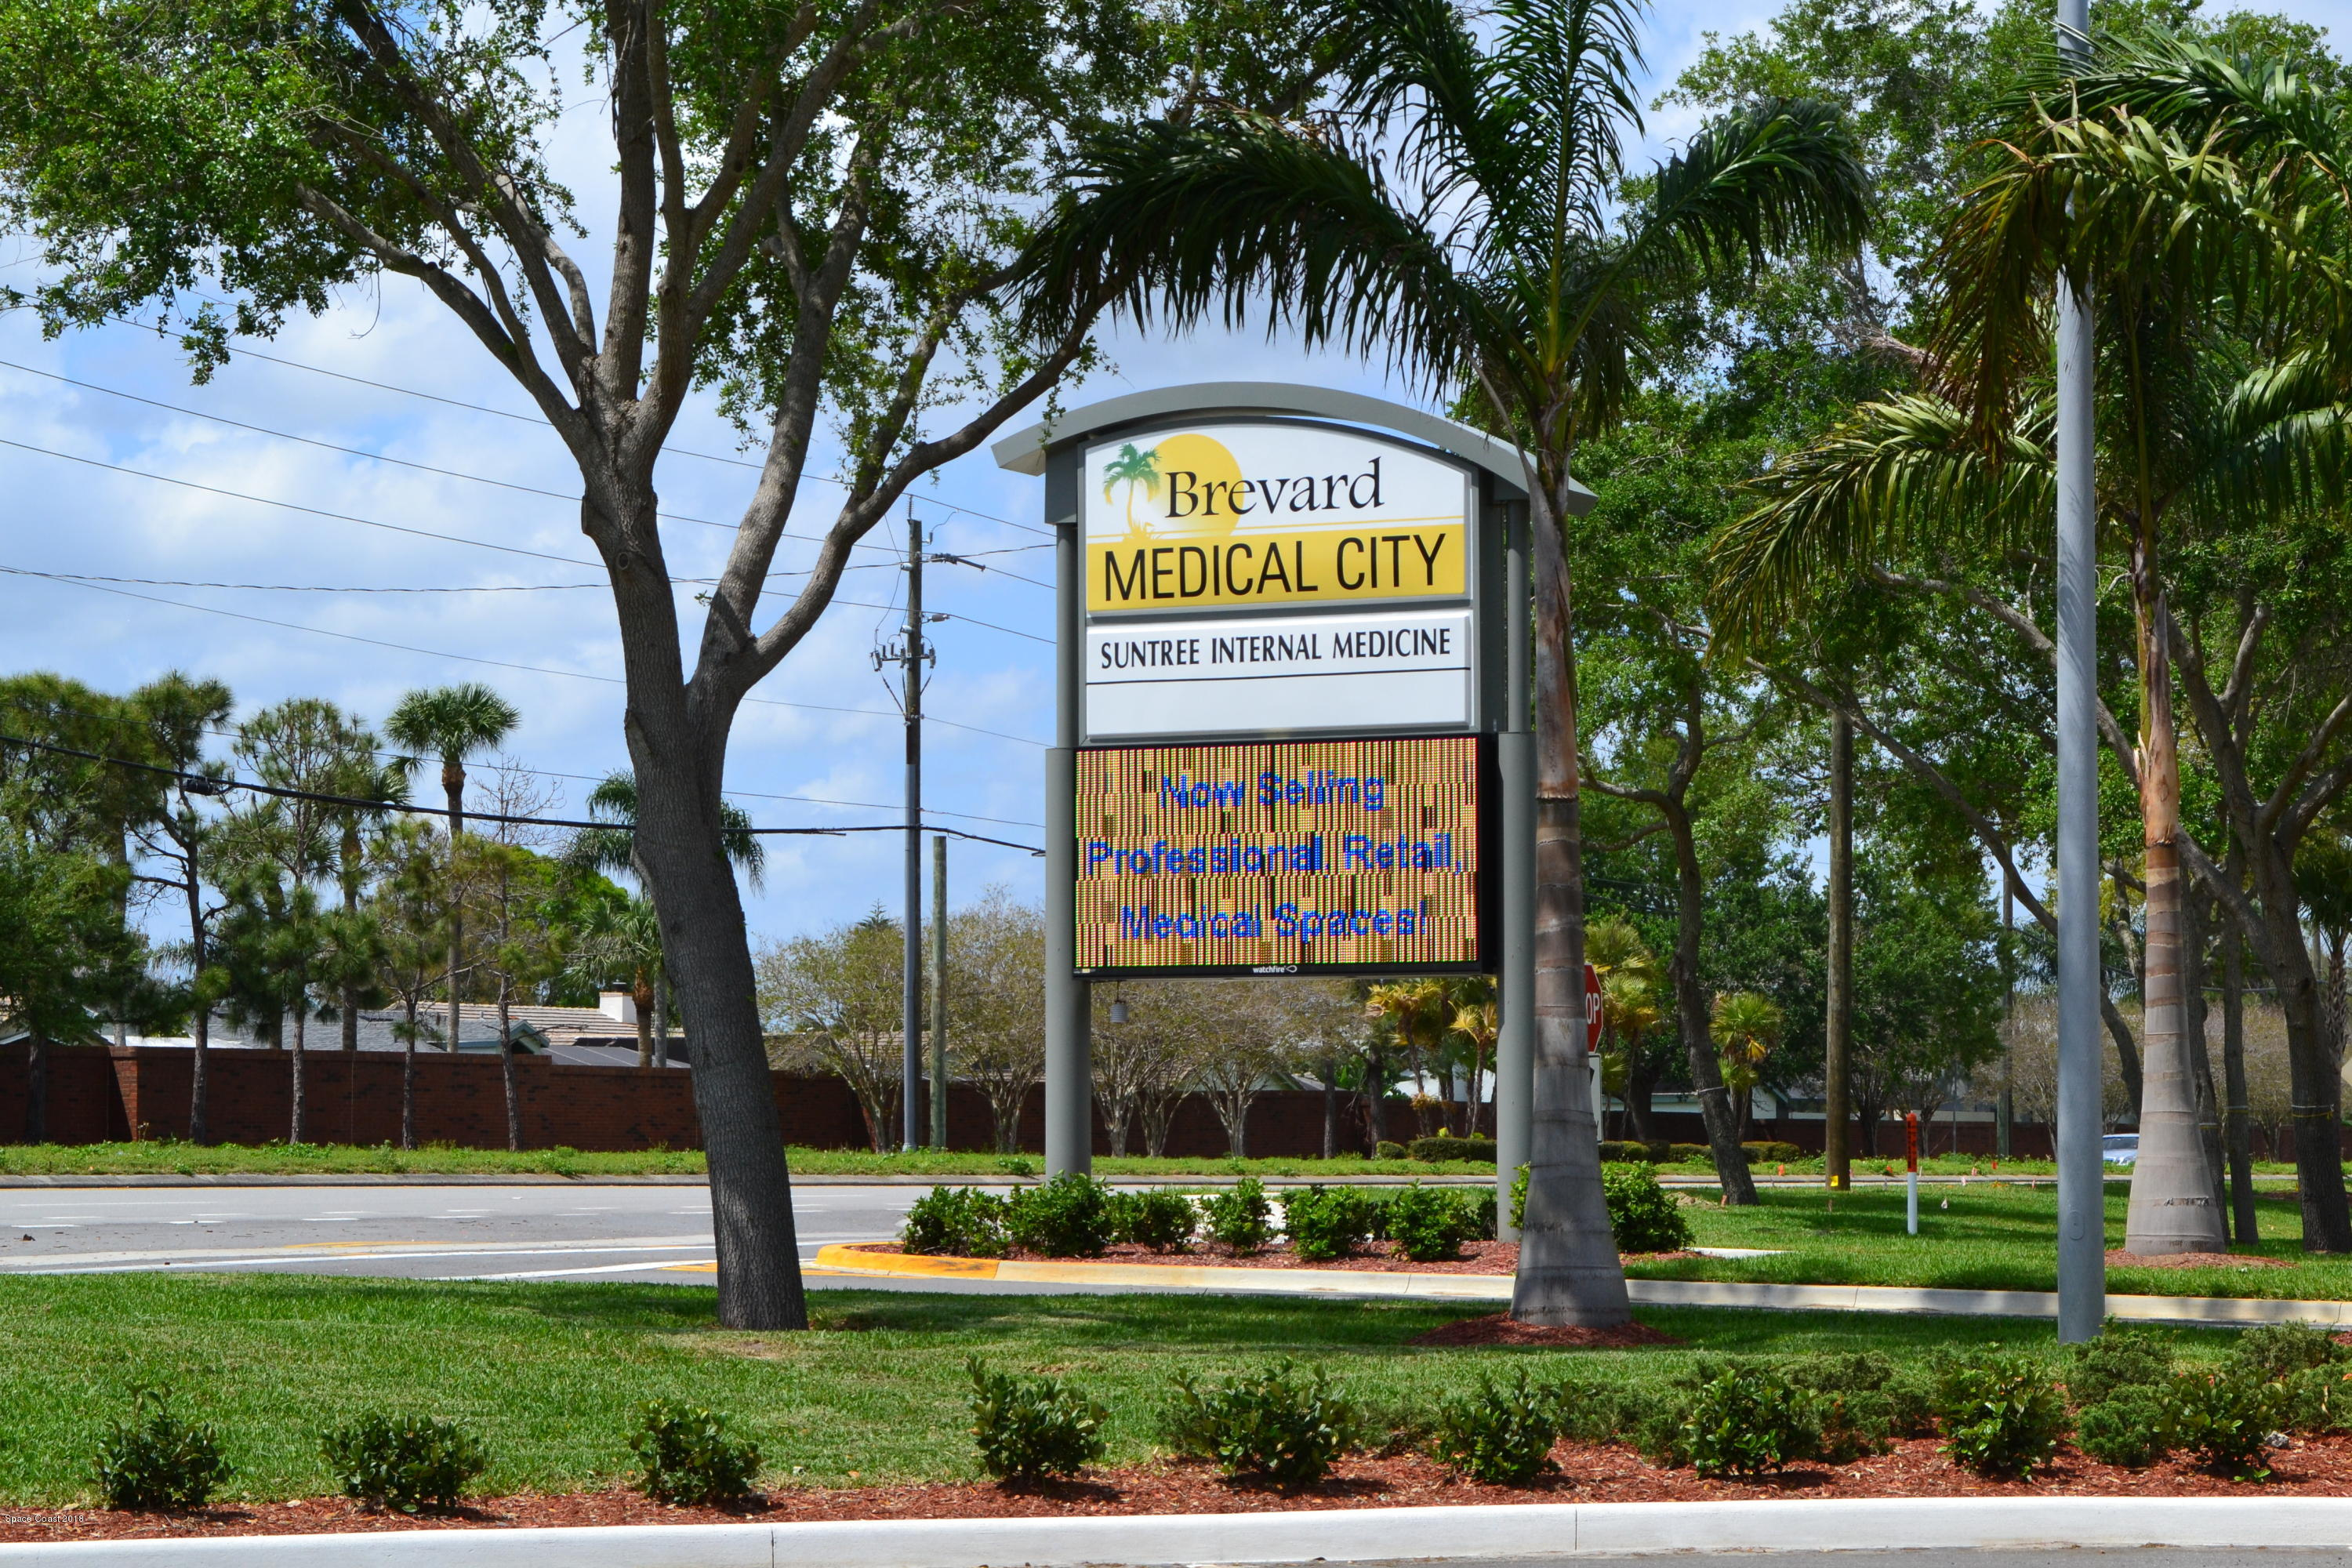 Commercial for Sale at 6545 N Wickham Road 6545 N Wickham Road Melbourne, Florida 32940 United States